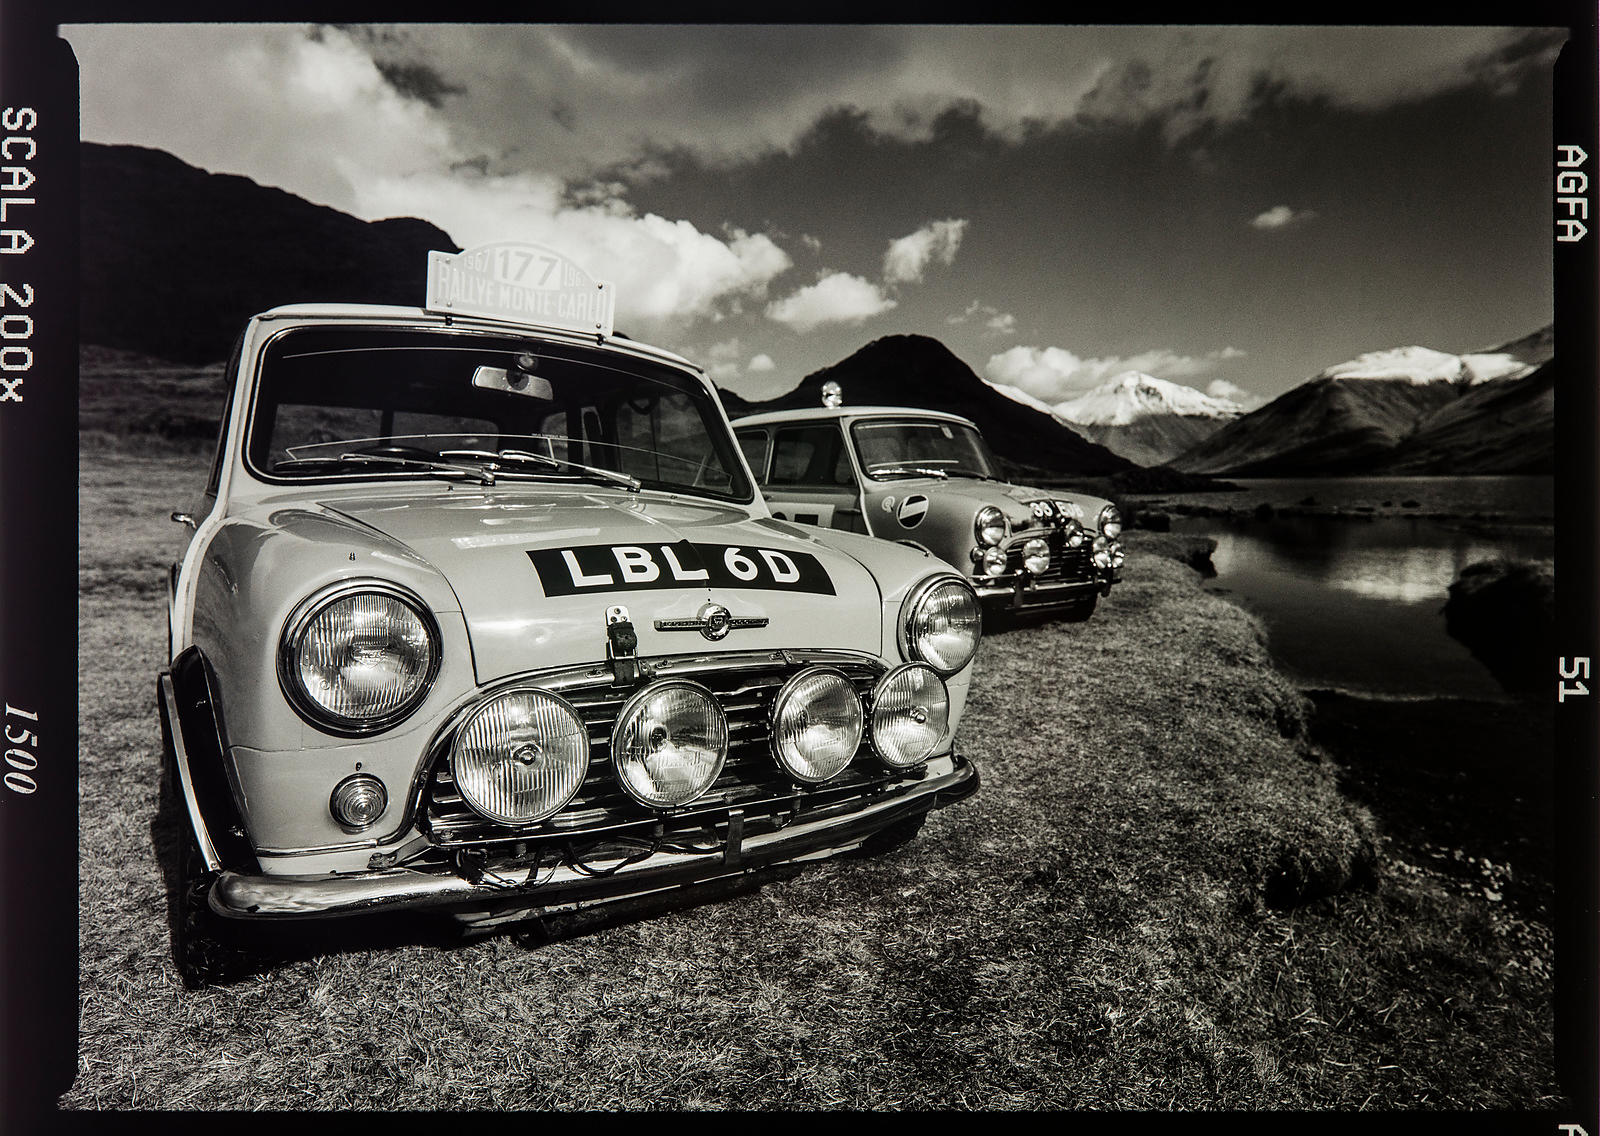 'LBL 6D and 33 EJB' The Monte Carlo Mini's' Photographer: Neil Emmerson 1998 (Agfa Scala Black and White Transparency/Nikon F...